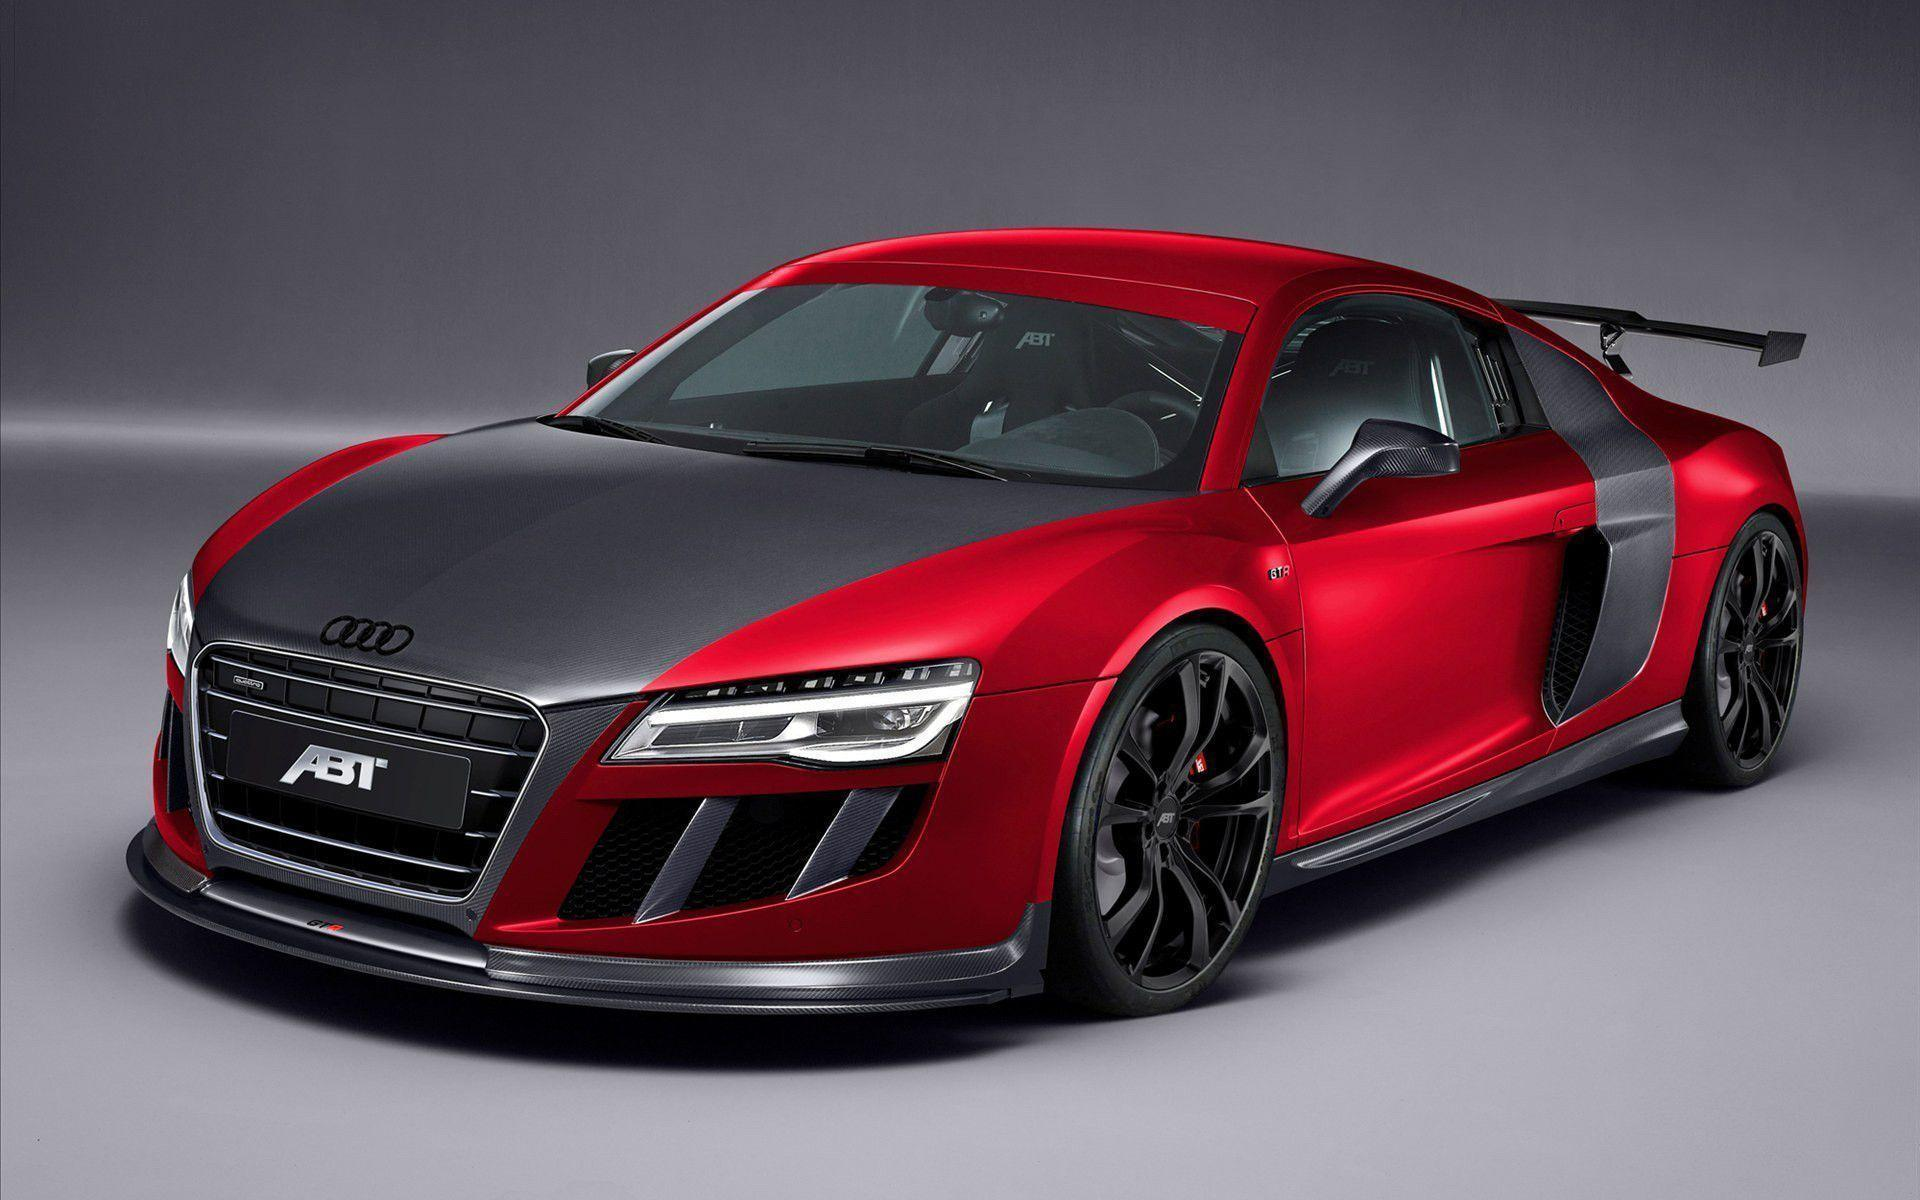 Collection of audi wallpaper in 4k 5k and mobile resolutions. Audi R8 Wallpapers Hd Wallpaper Cave